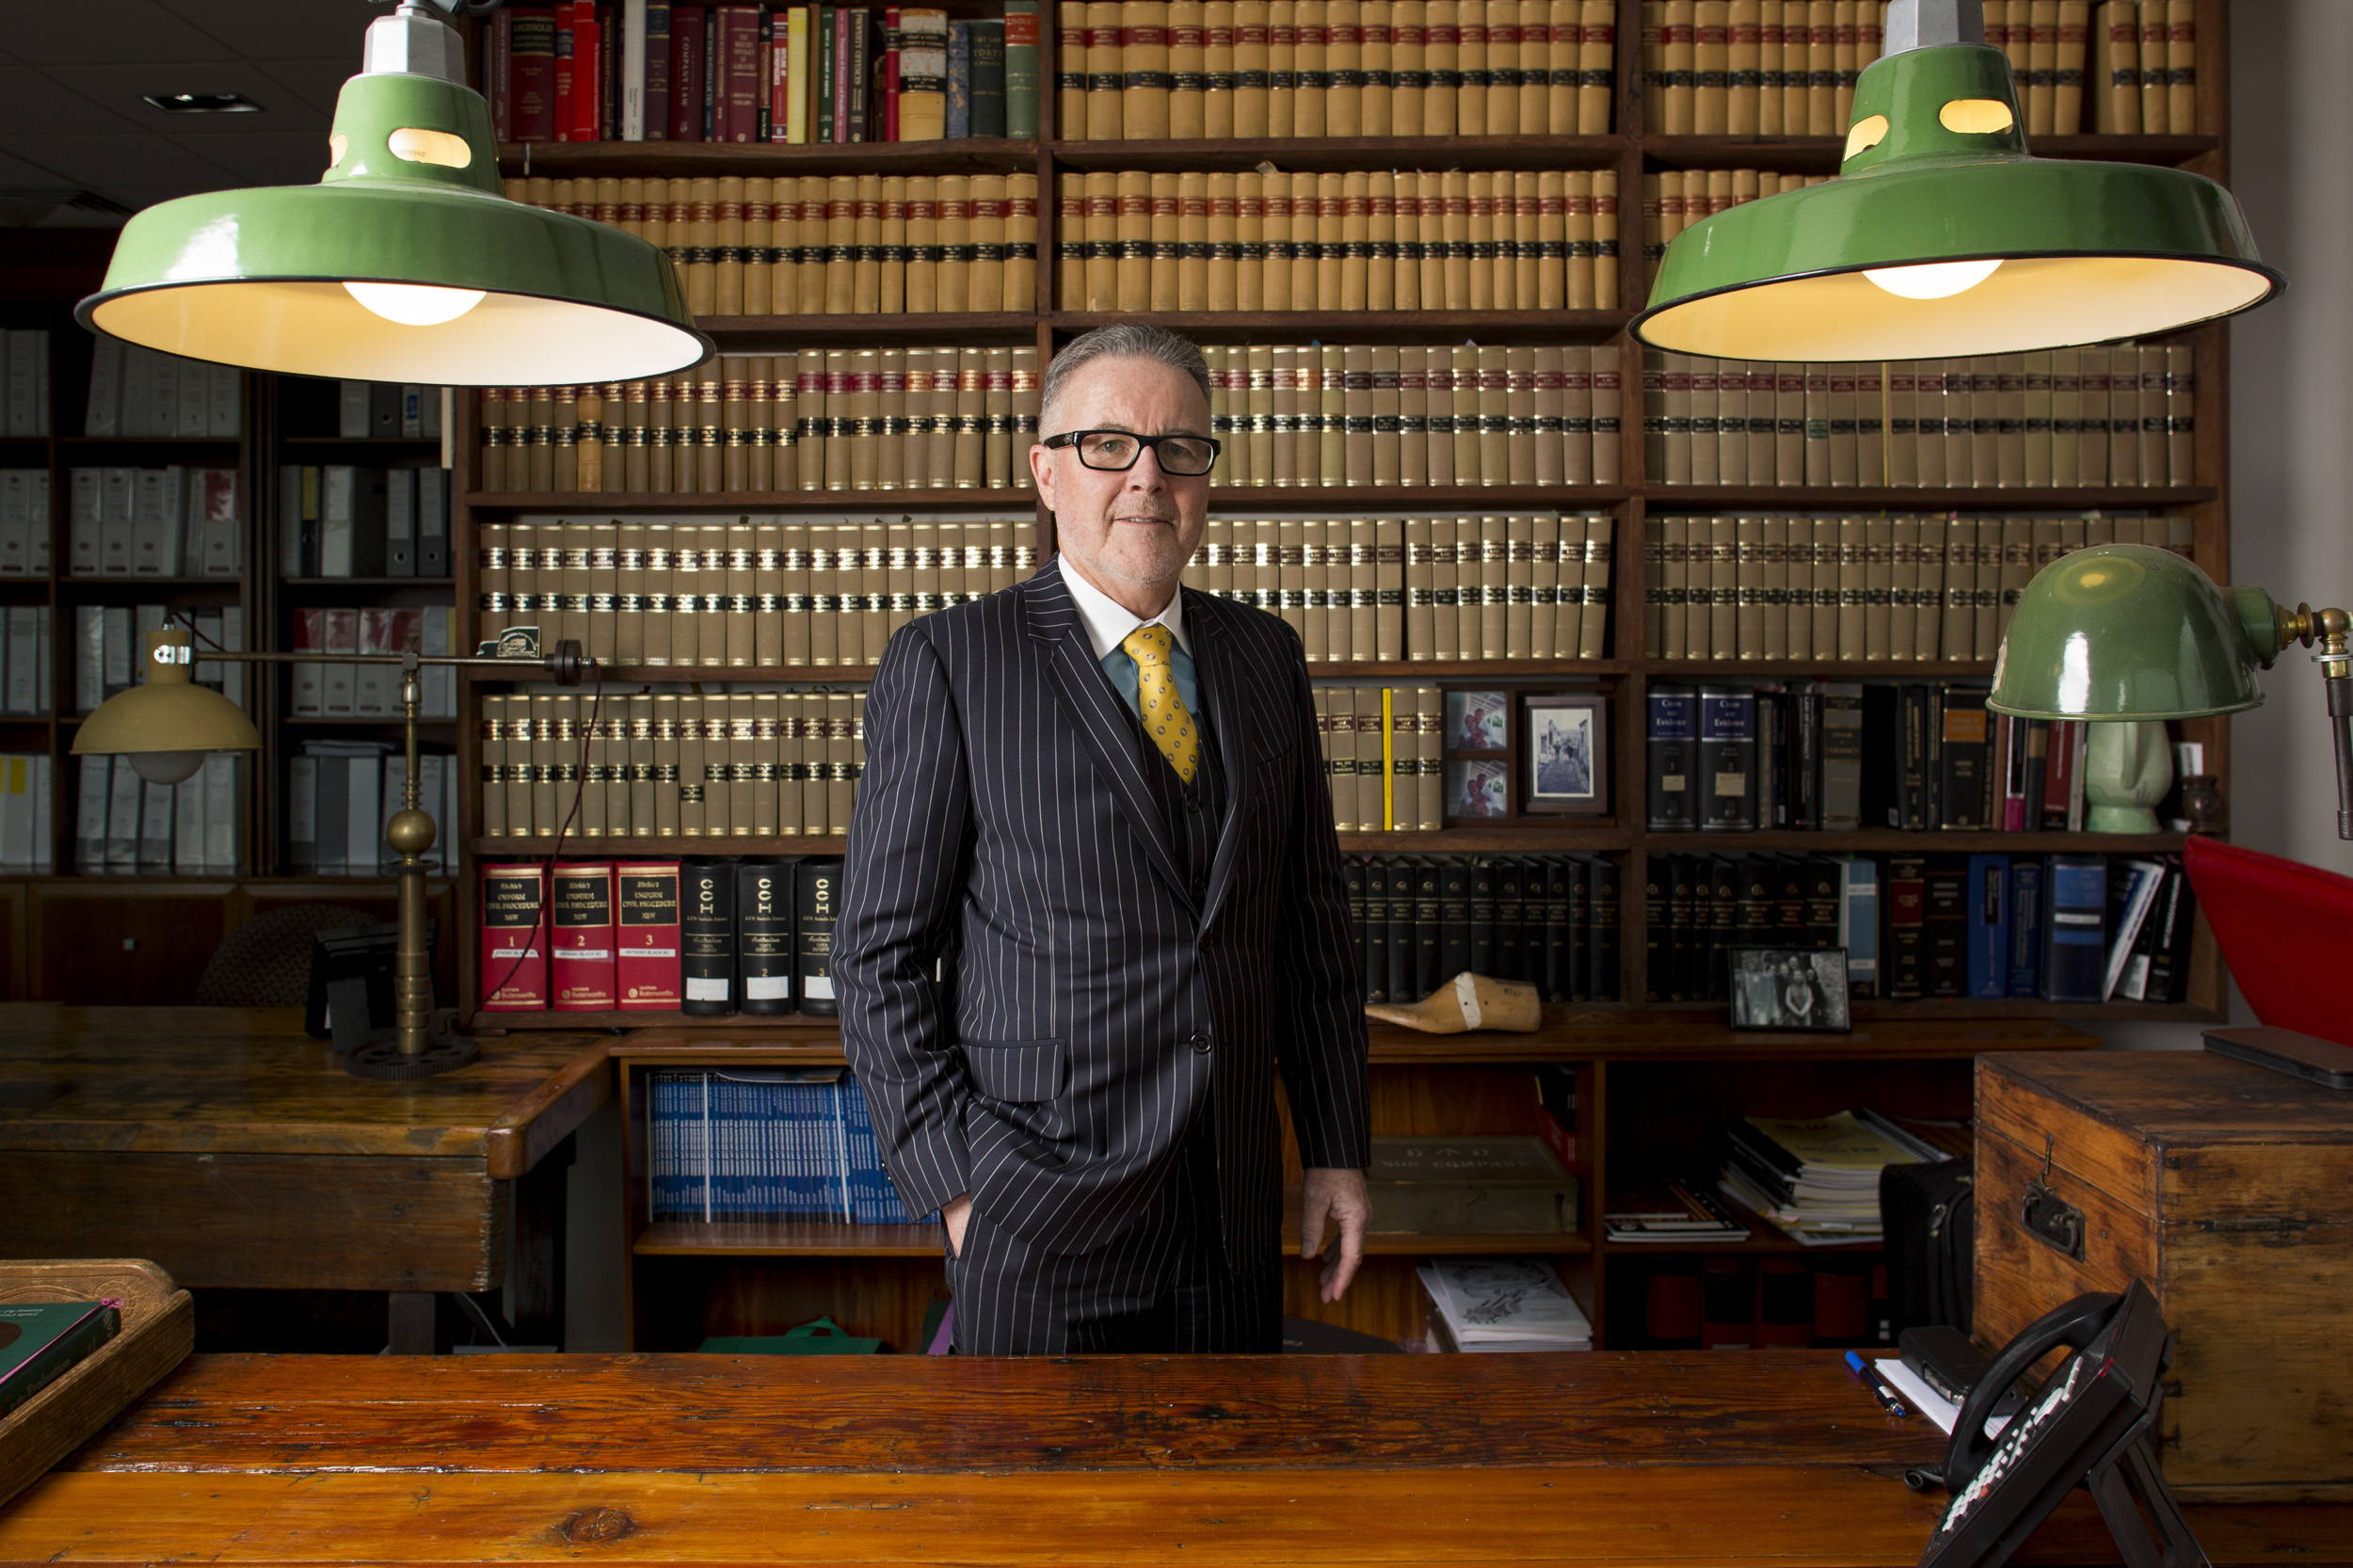 Law Firm Portraits Sydney